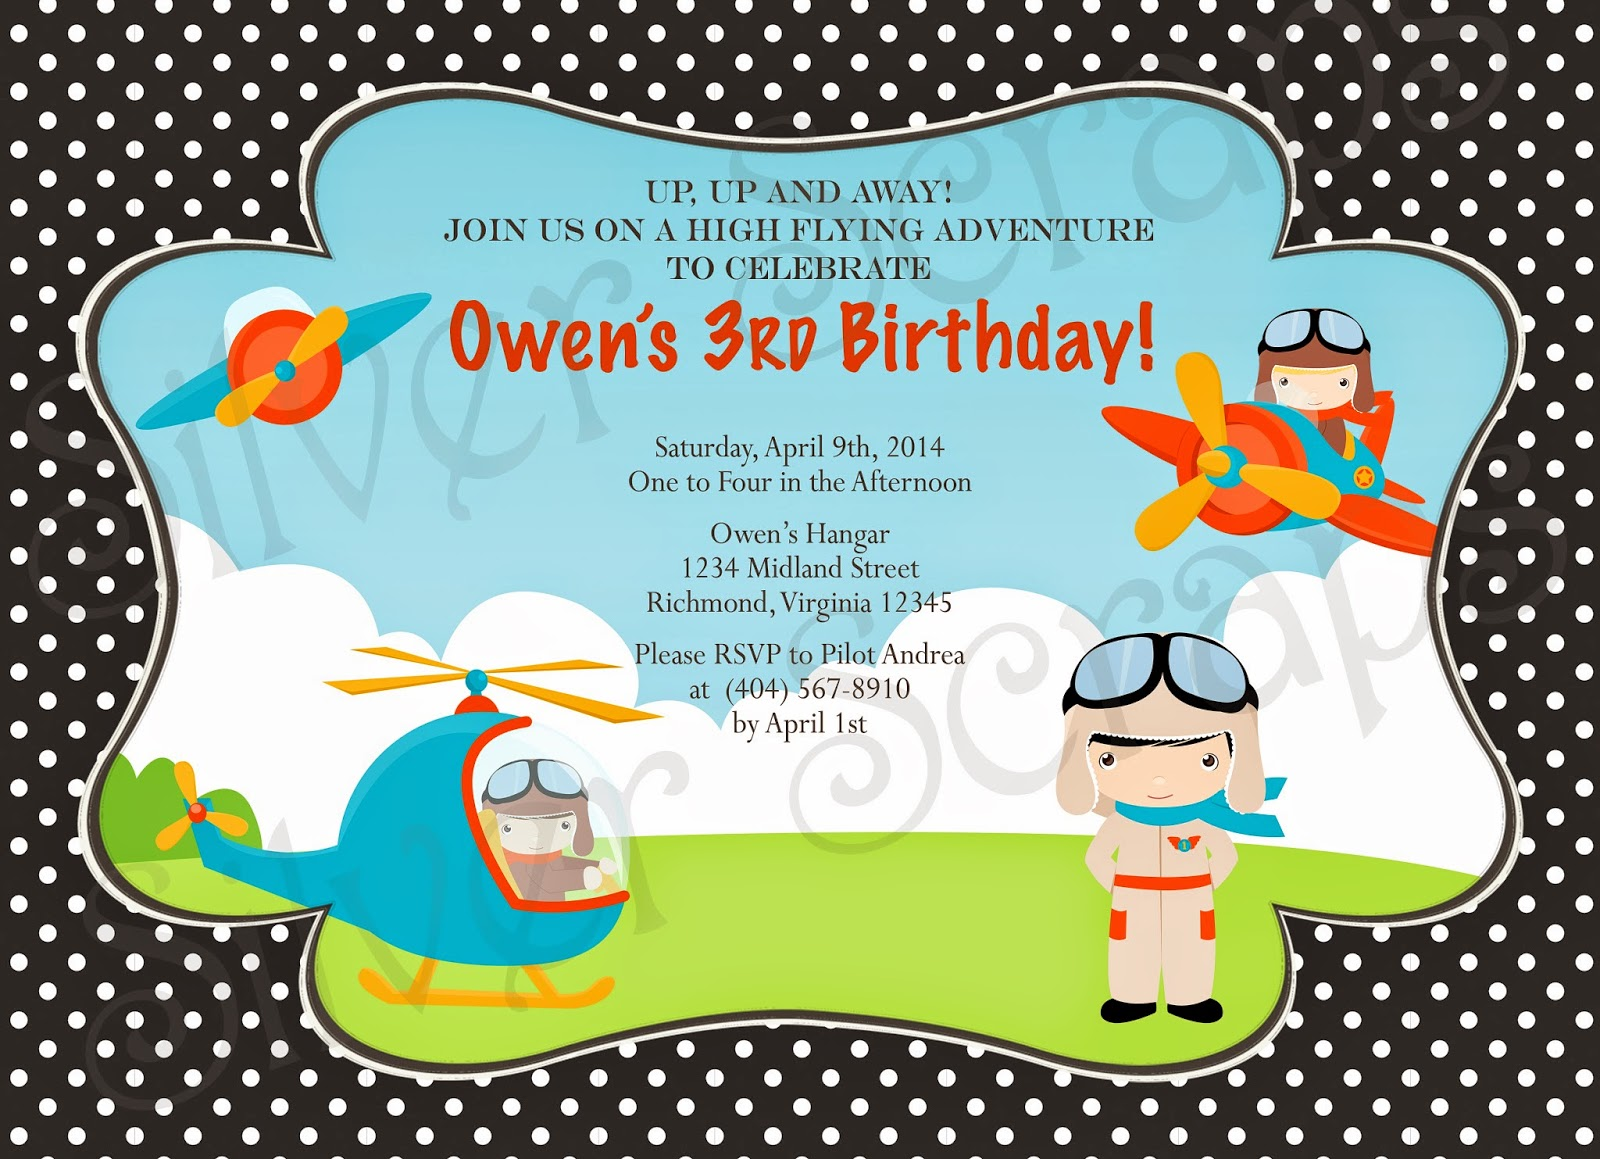 Up, Up, and Away - Custom Digital Airplane Birthday Invitation -Boy Plane Fly Flying Helicopter Pilot Red Blue Yellow - 5 Printable Designs aviator blue chevron red yellow orange helicopter goggles black polka dots